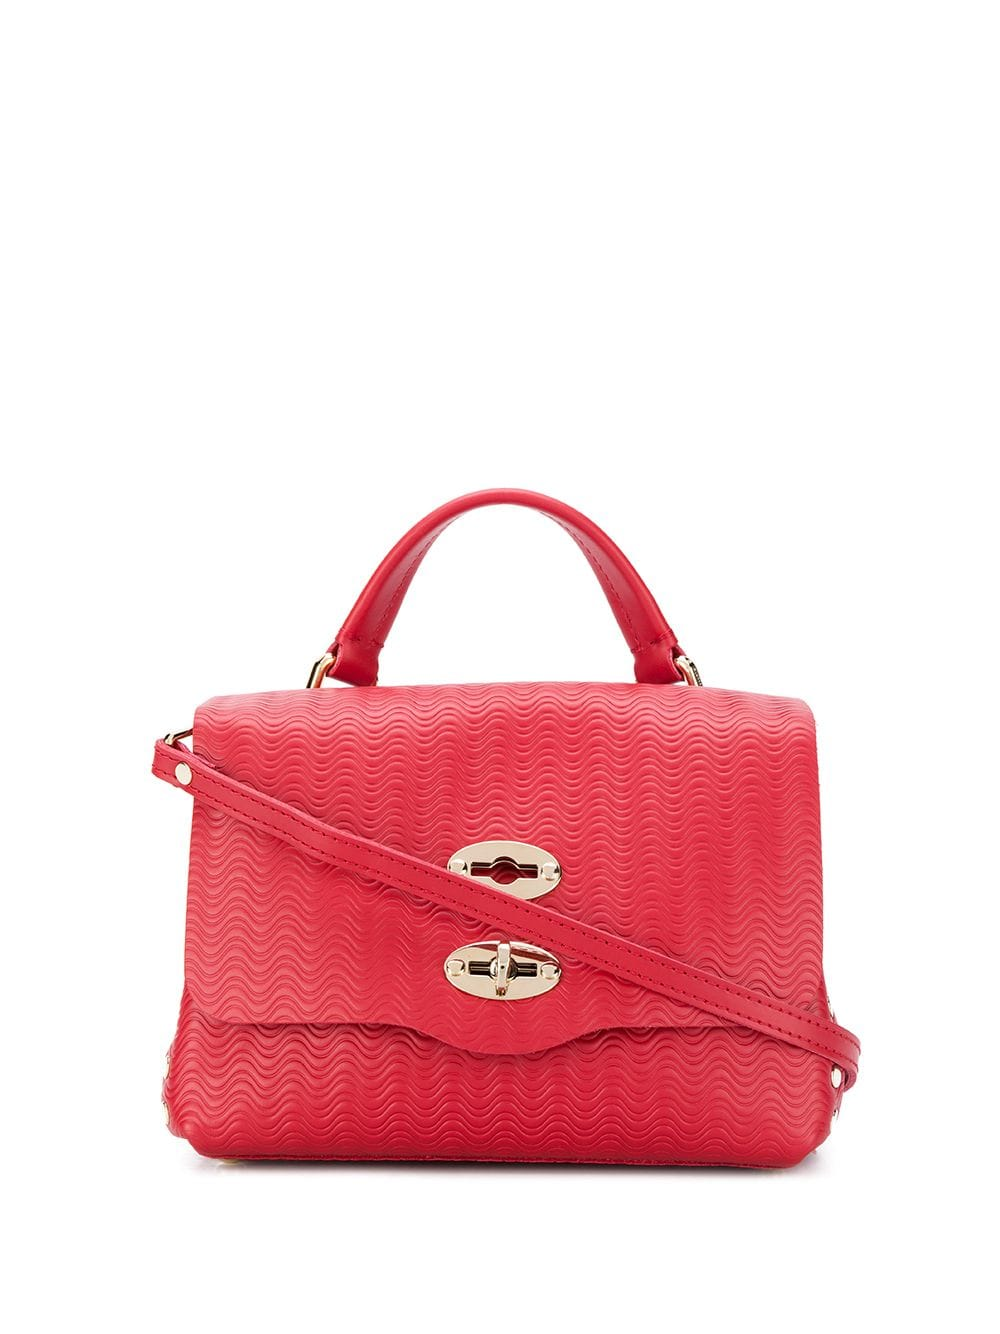 red baby Postina cross-body bag in wave effect print leather Zanellato      6263-6073